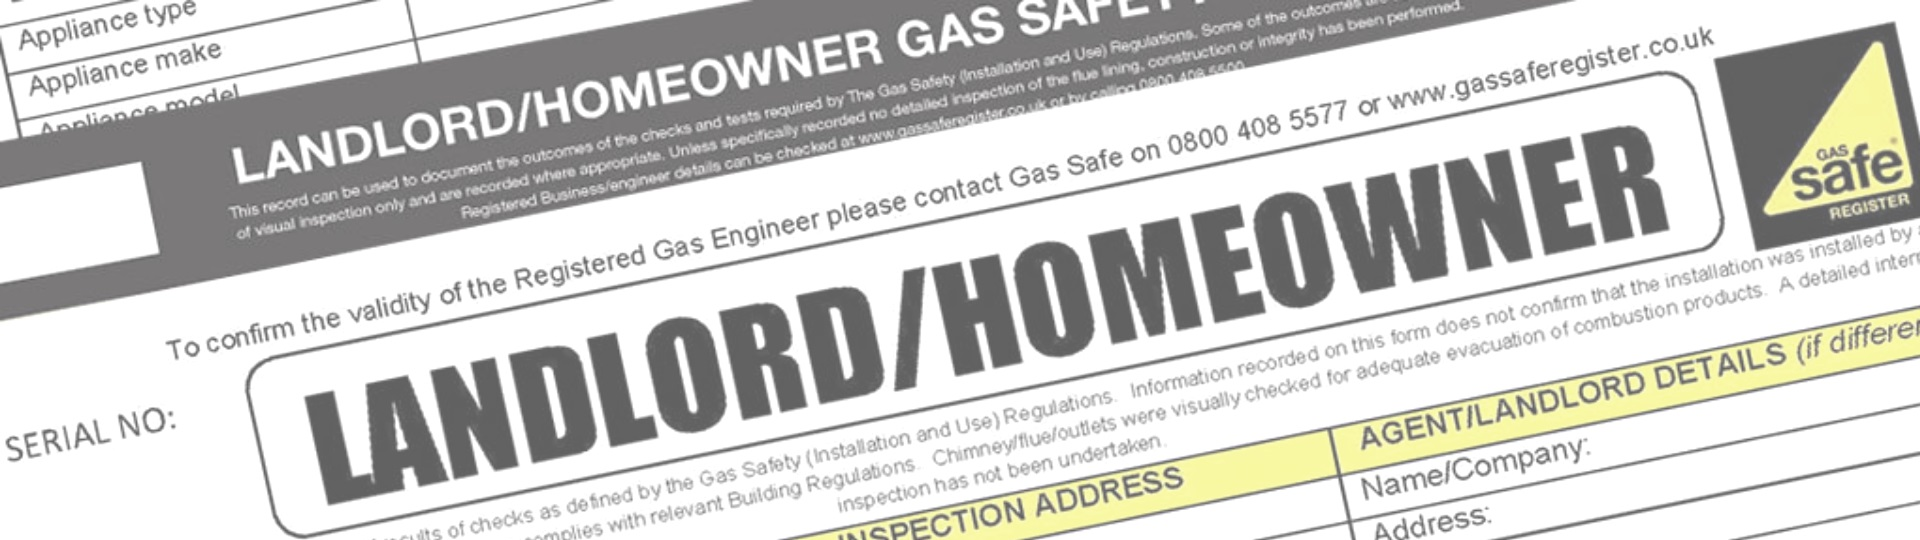 Gas Saftey Certificates Totterdown